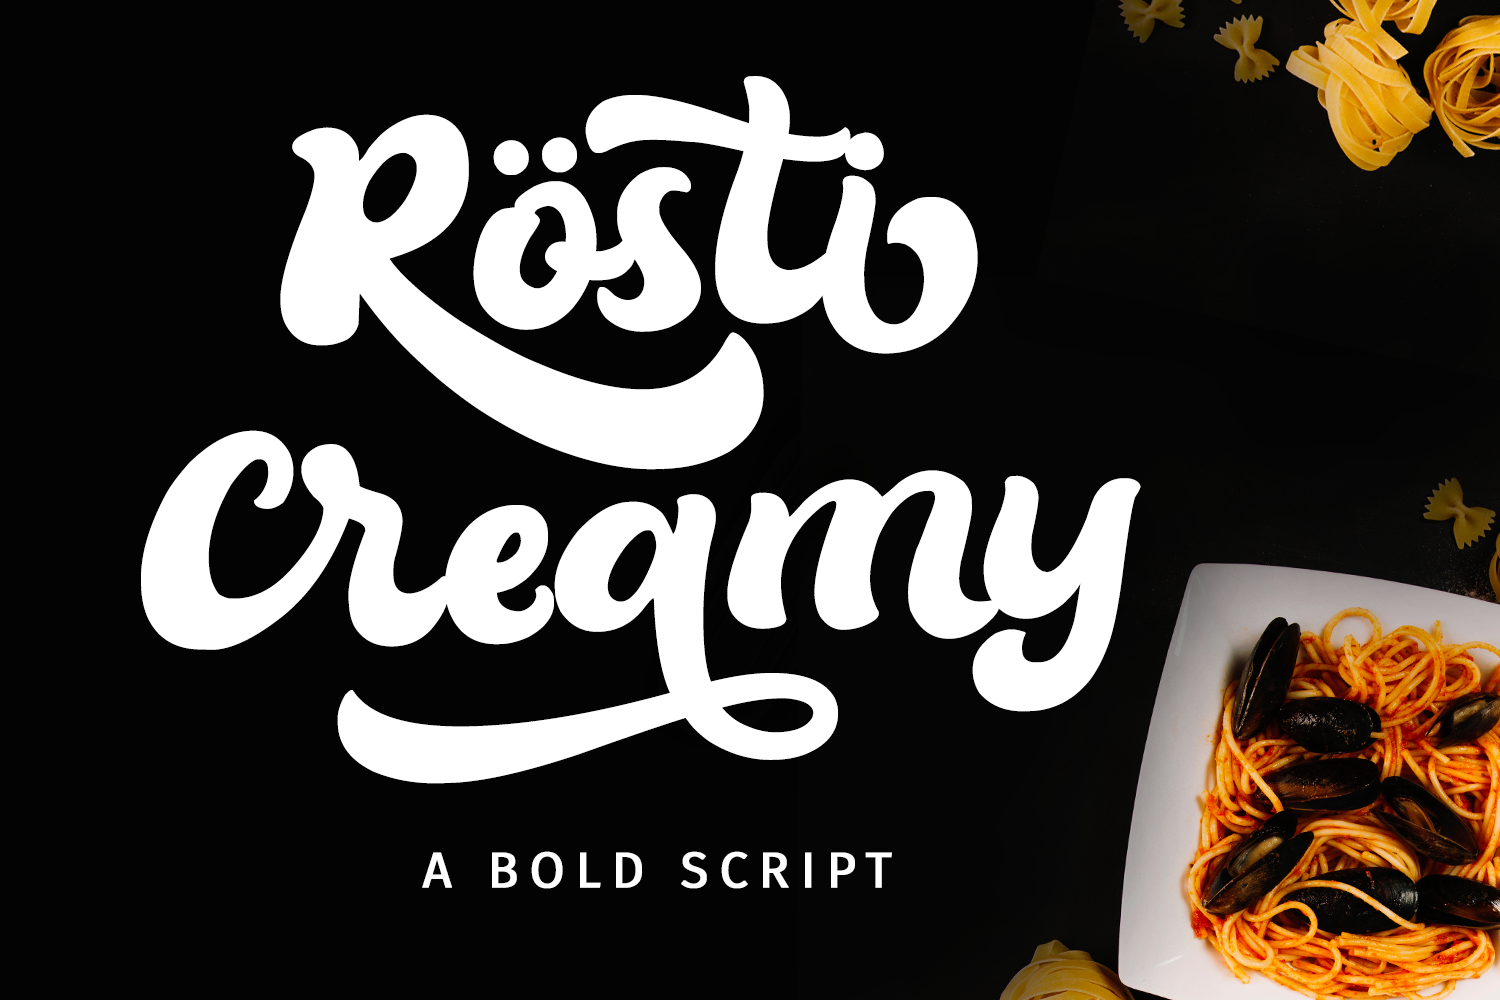 Download Free Rosti Creamy Font By Girinesia Creative Fabrica for Cricut Explore, Silhouette and other cutting machines.